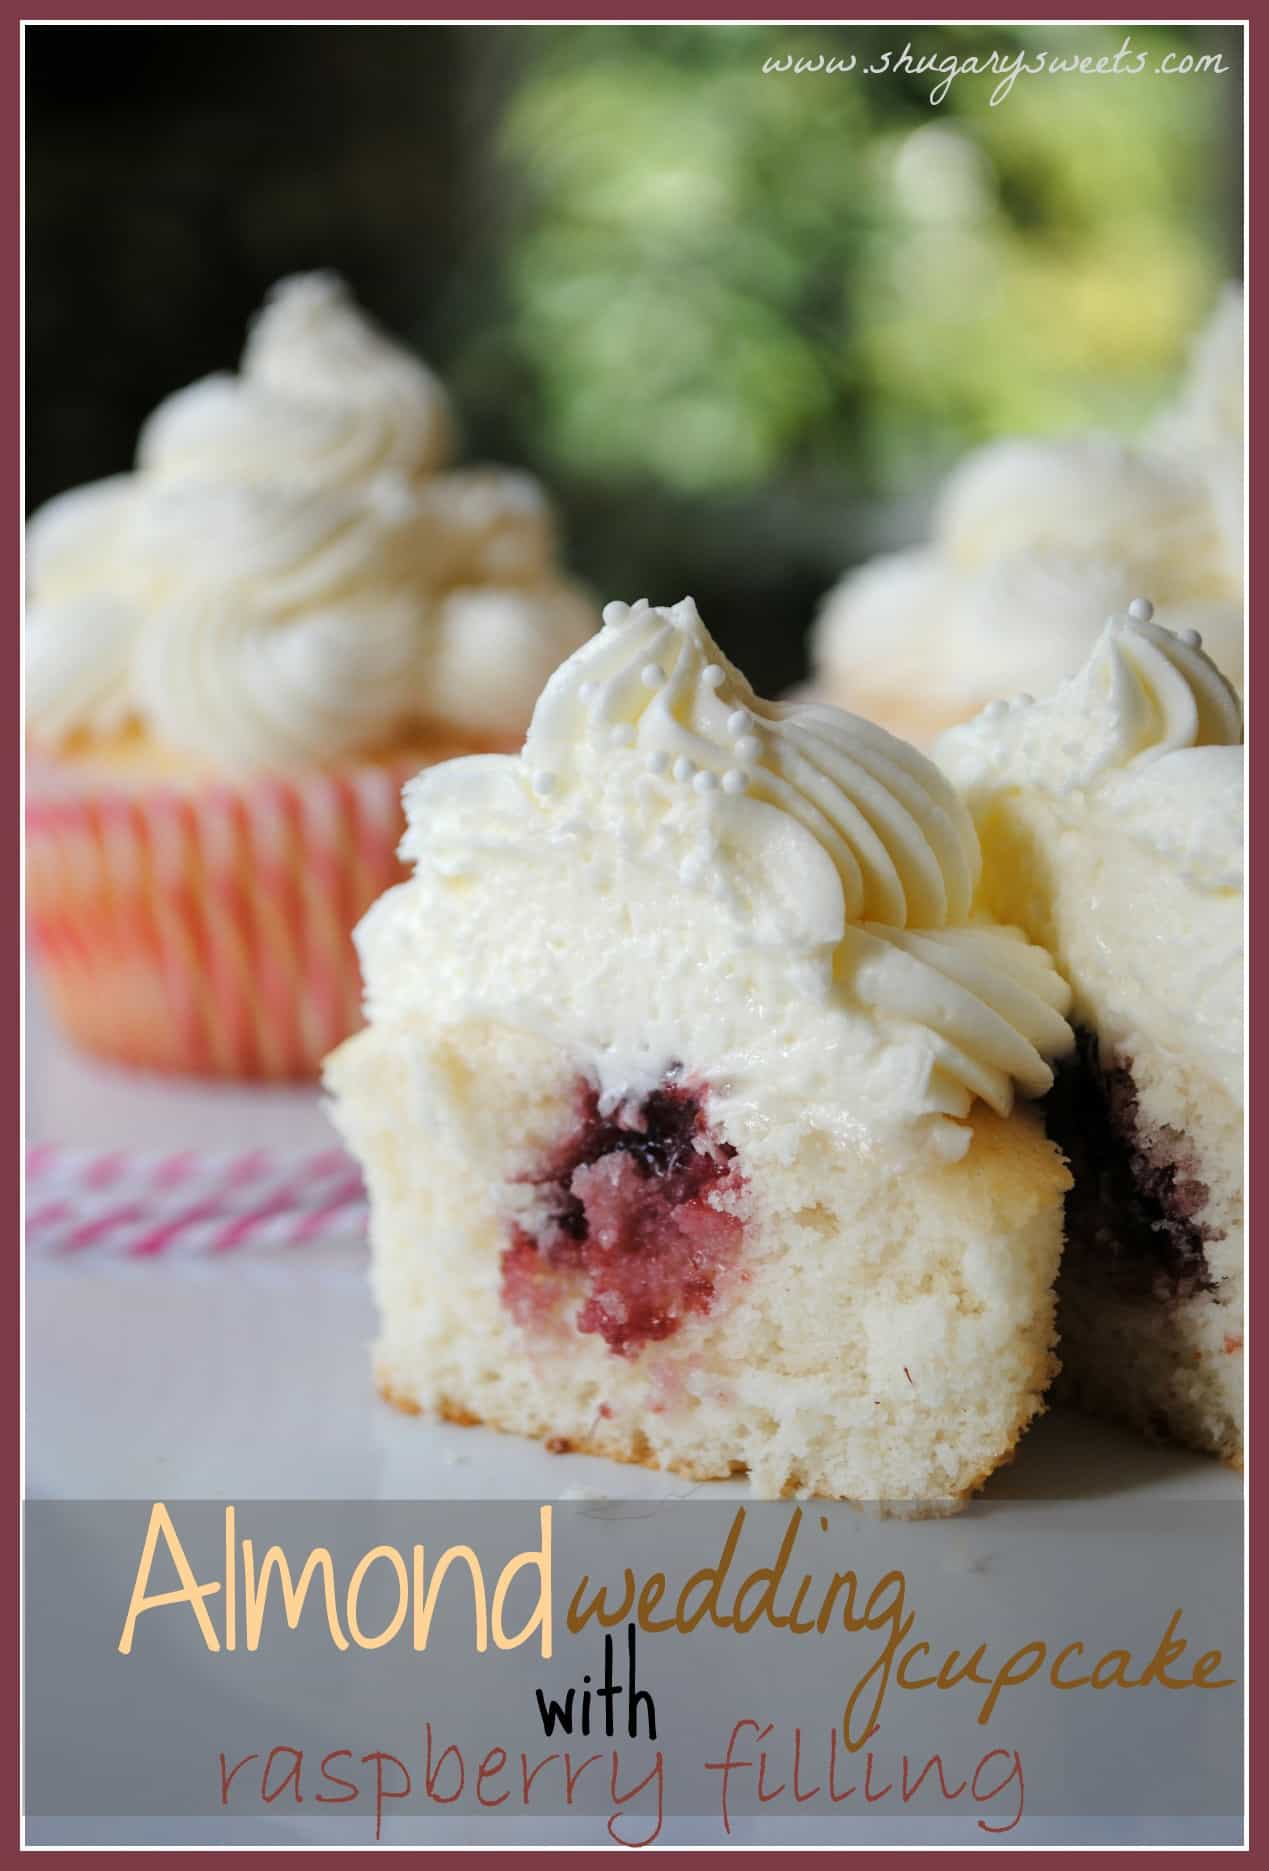 almond wedding cake cupcakes with raspberry filling shugary sweets. Black Bedroom Furniture Sets. Home Design Ideas